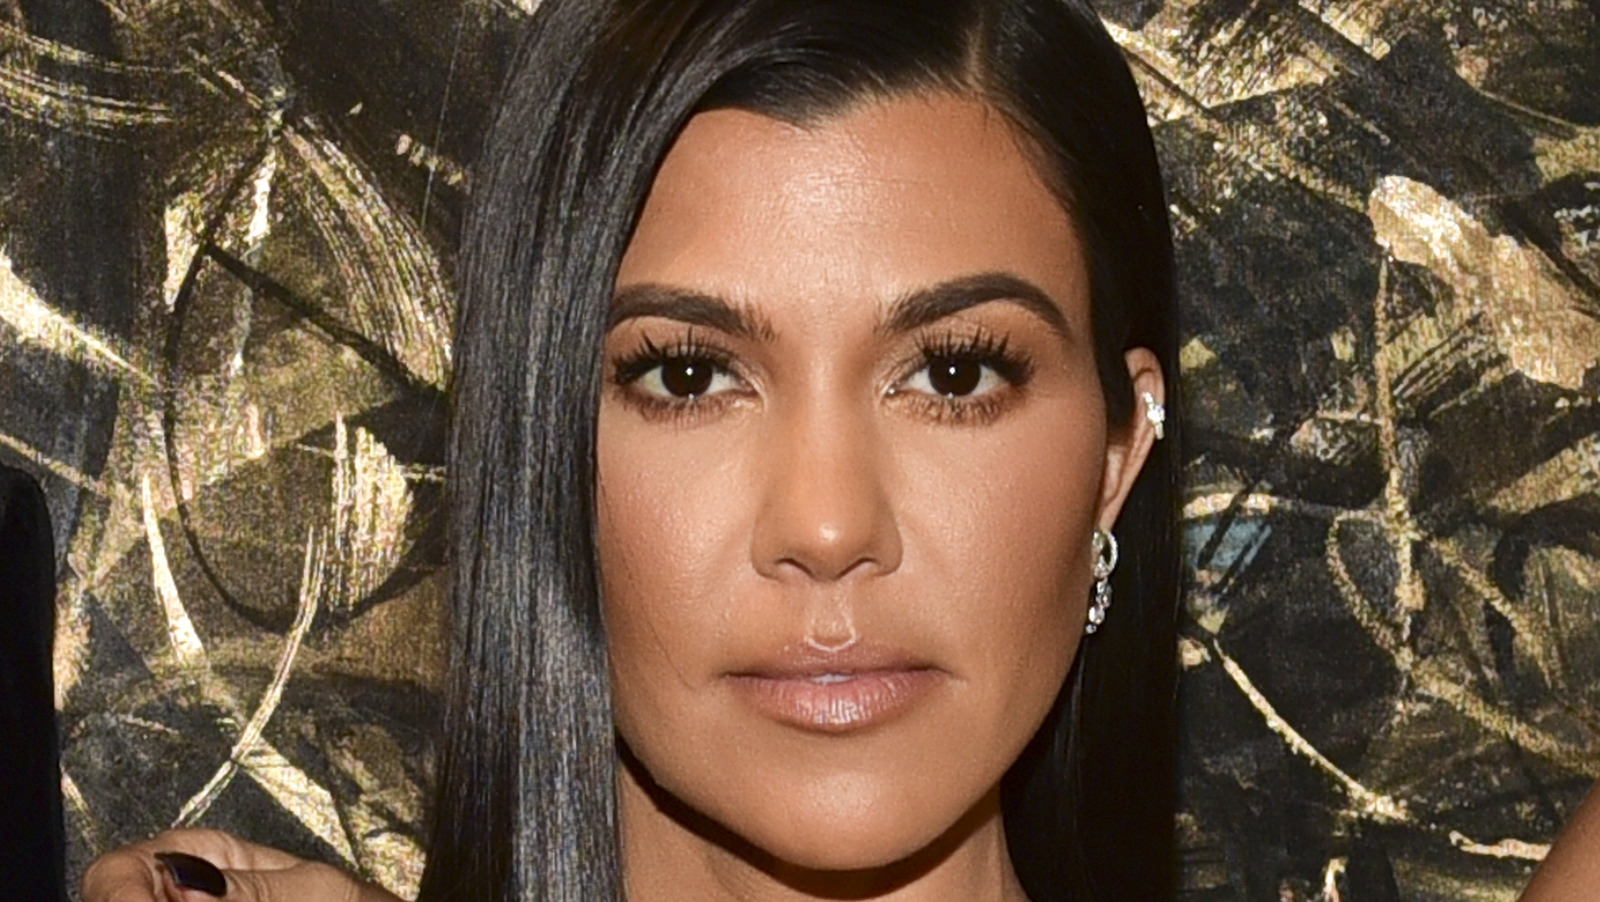 The Real Reason Kourtney Was Briefly The Most Famous Kardashian